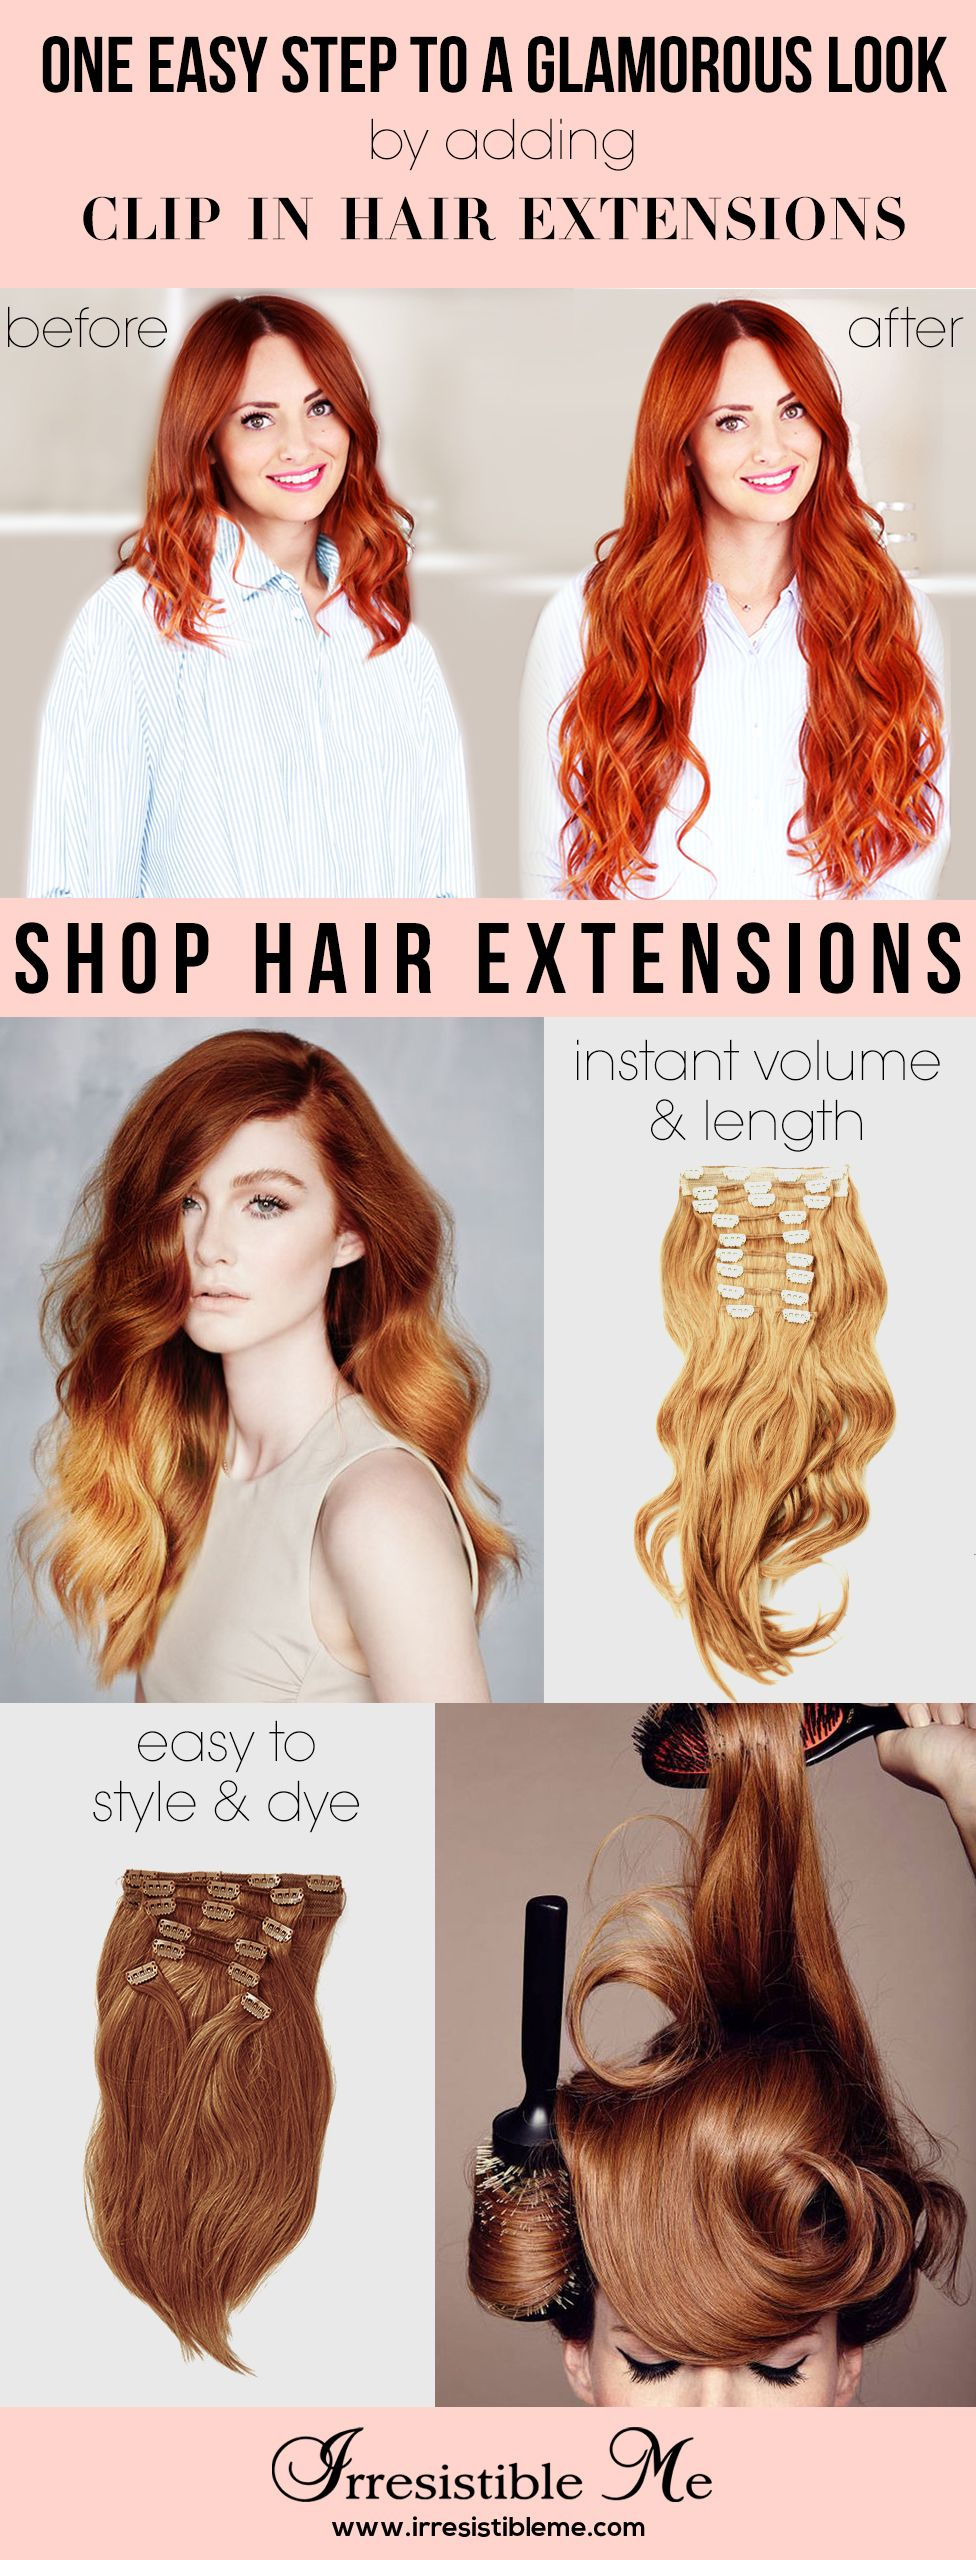 the perfect day starts with cute hair. try a dramatic hairstyle